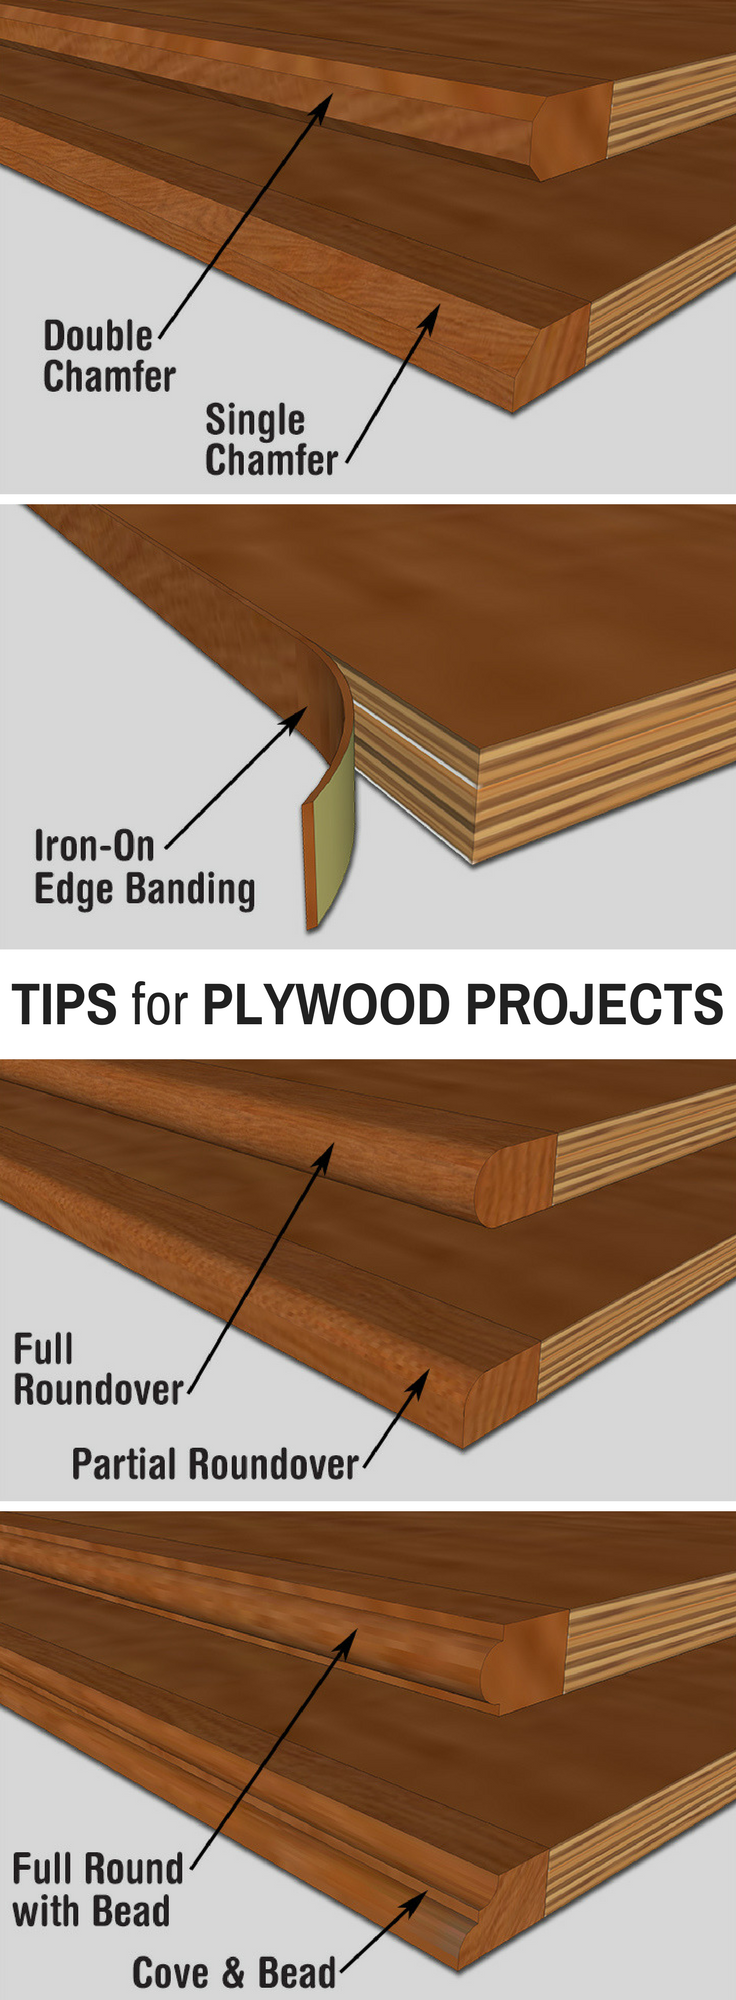 Tips for building projects with plywood plywood is a great tips for building projects with plywood plywood is a great material for do it solutioingenieria Gallery